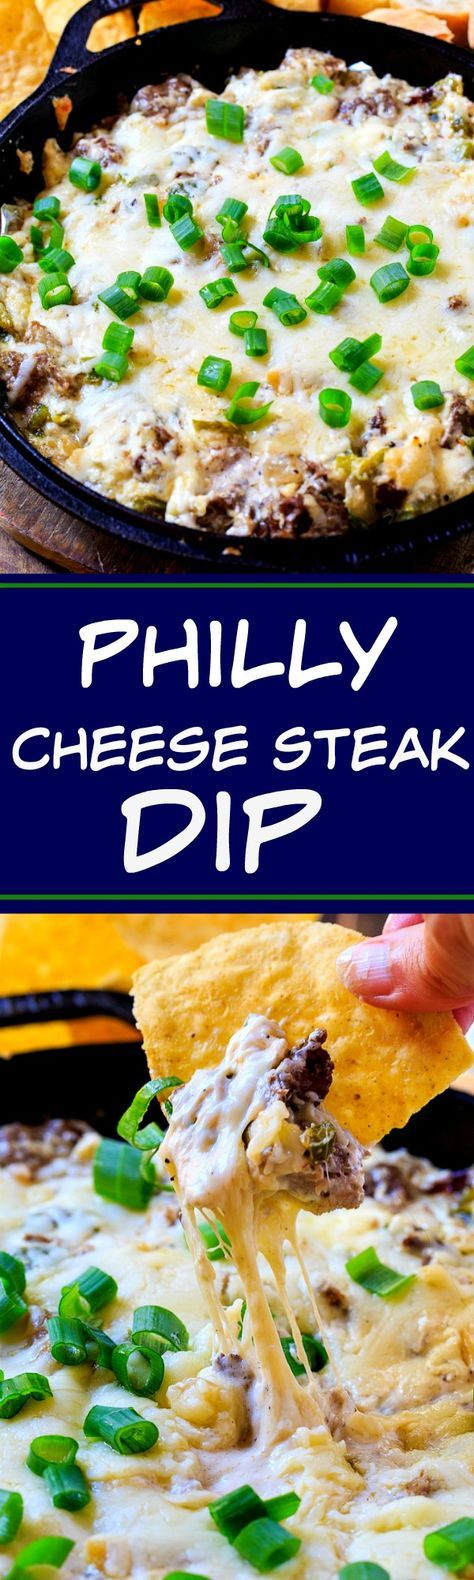 Philly Cheese Steak Dip- perfect for game day!